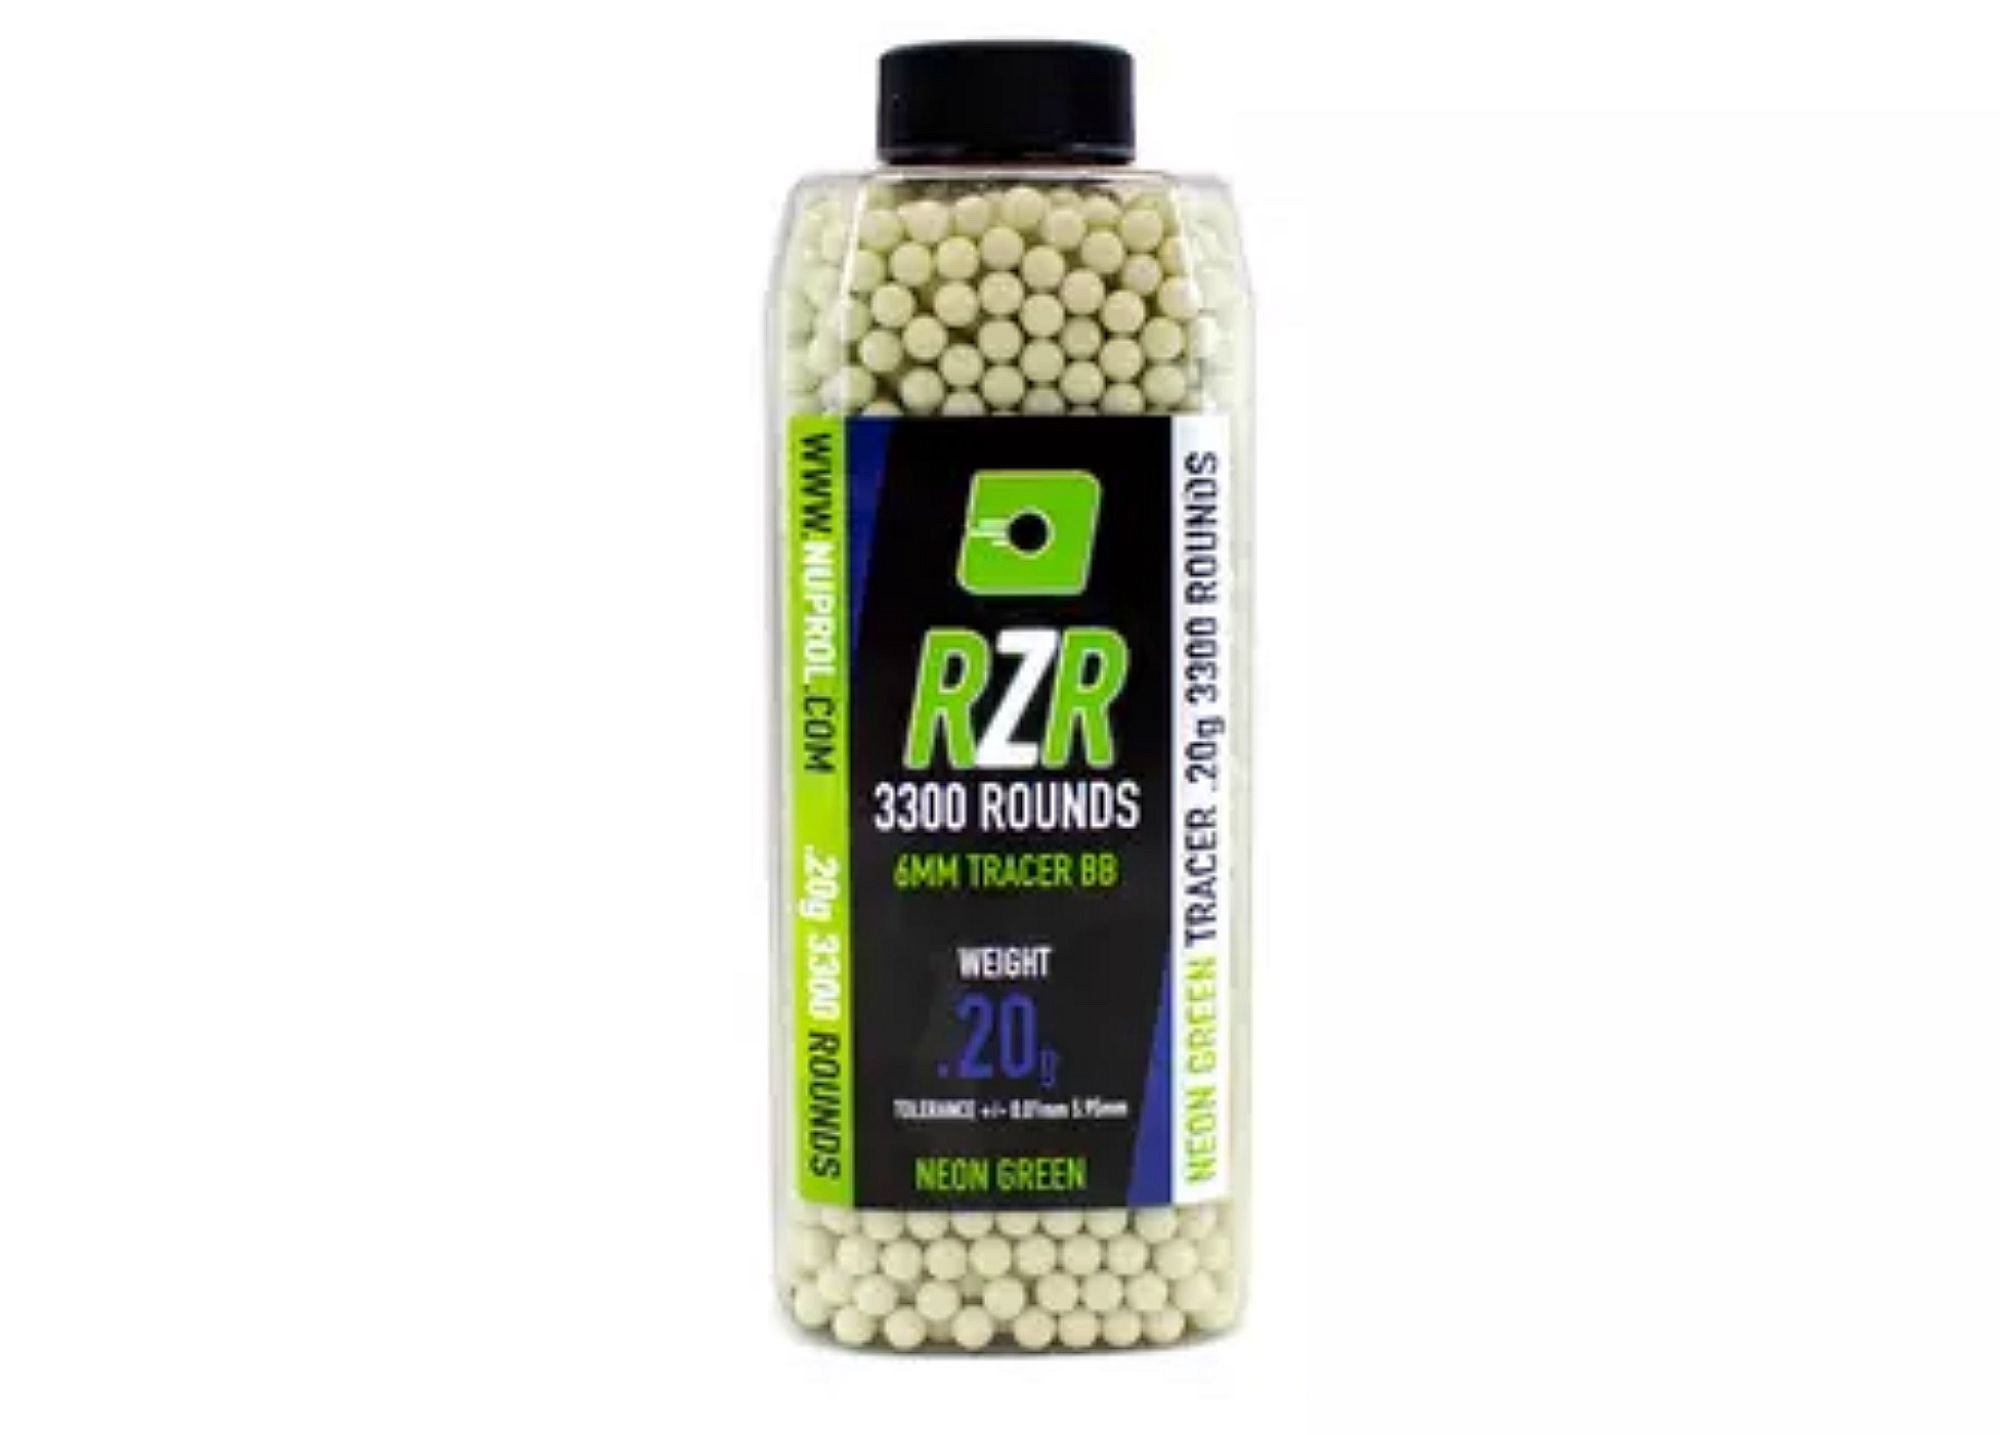 Nuprol RZR .20g 3300rds Green Tracer Rounds